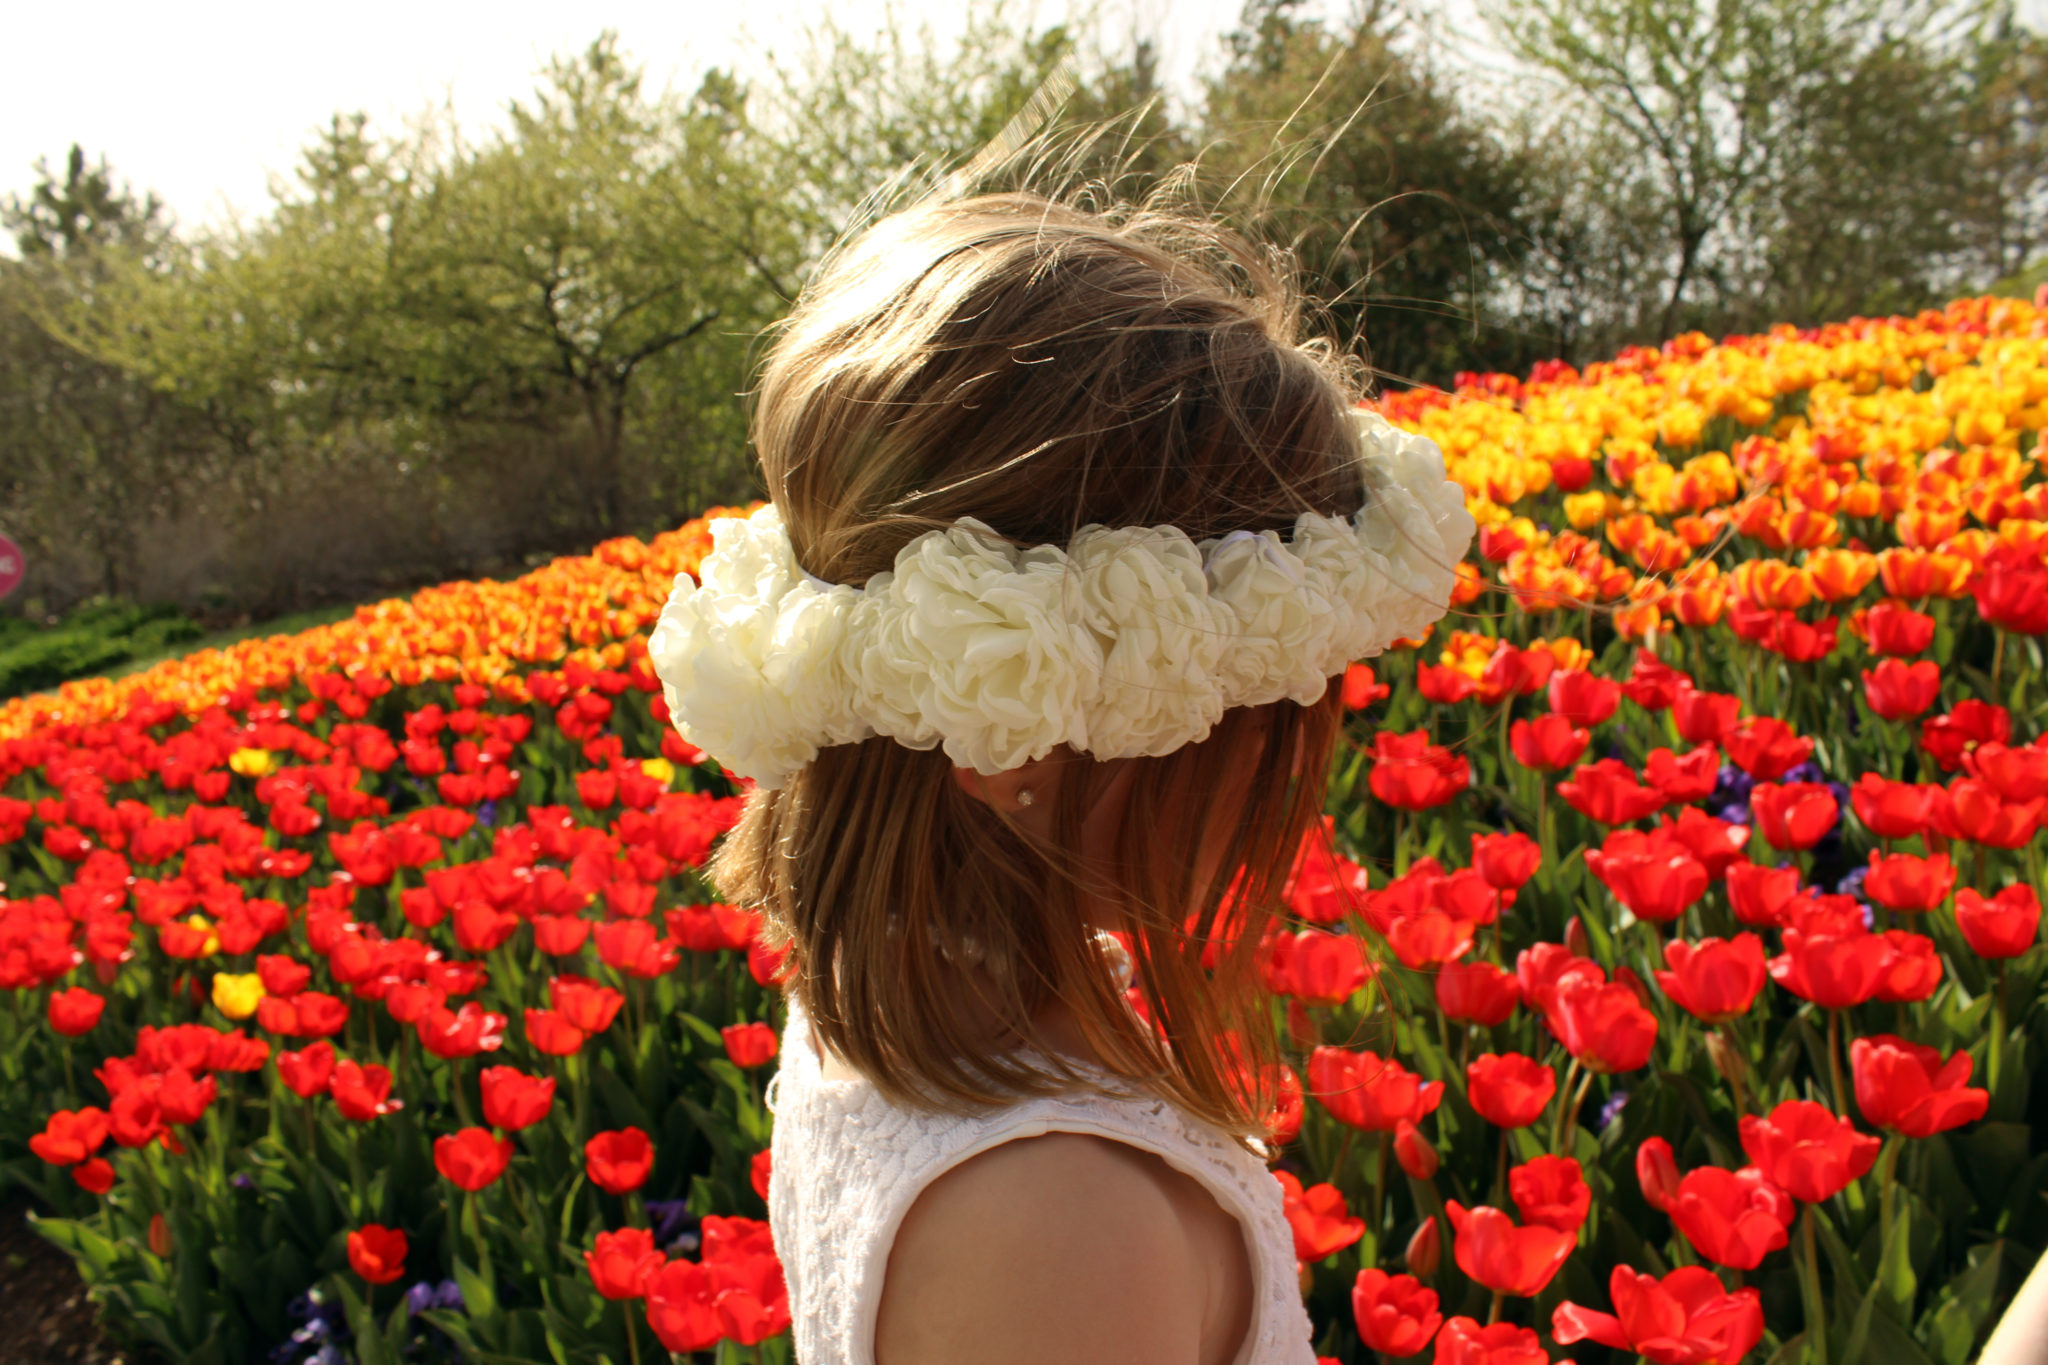 How To Make A Flower Crown Headband A Simple Diy Tutorial